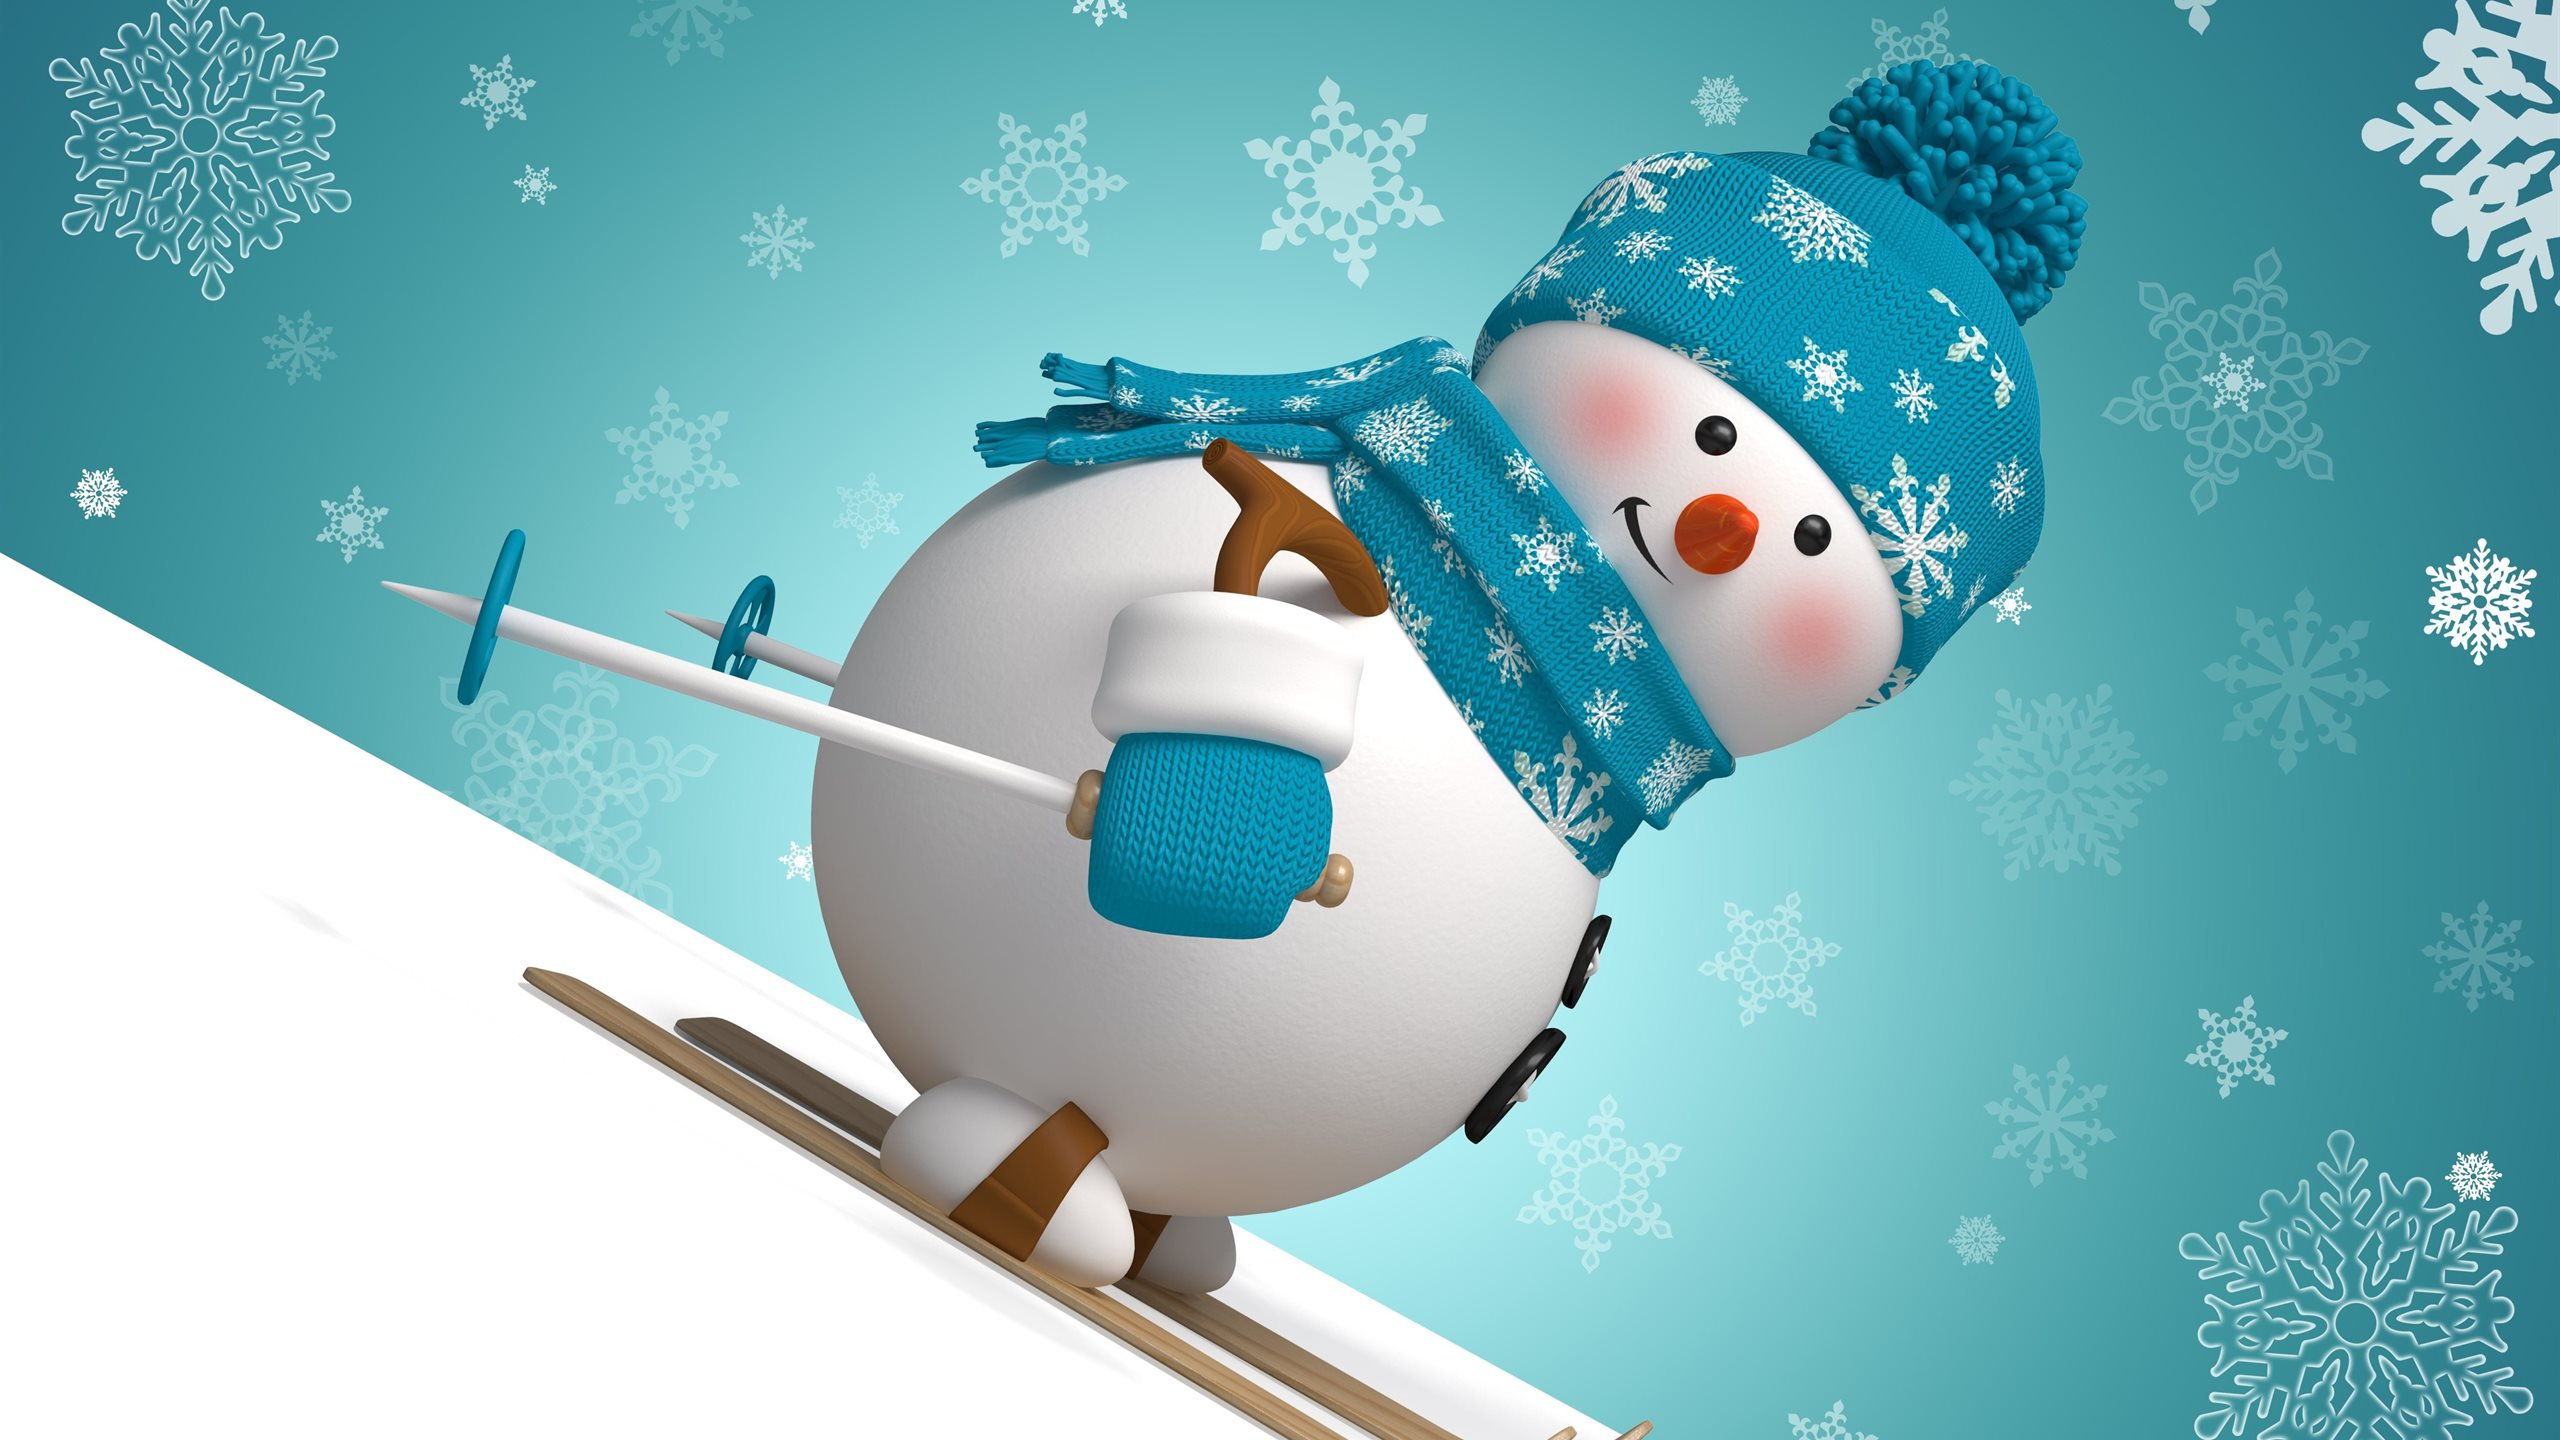 Snowman Wallpaper Desktop Computer HD